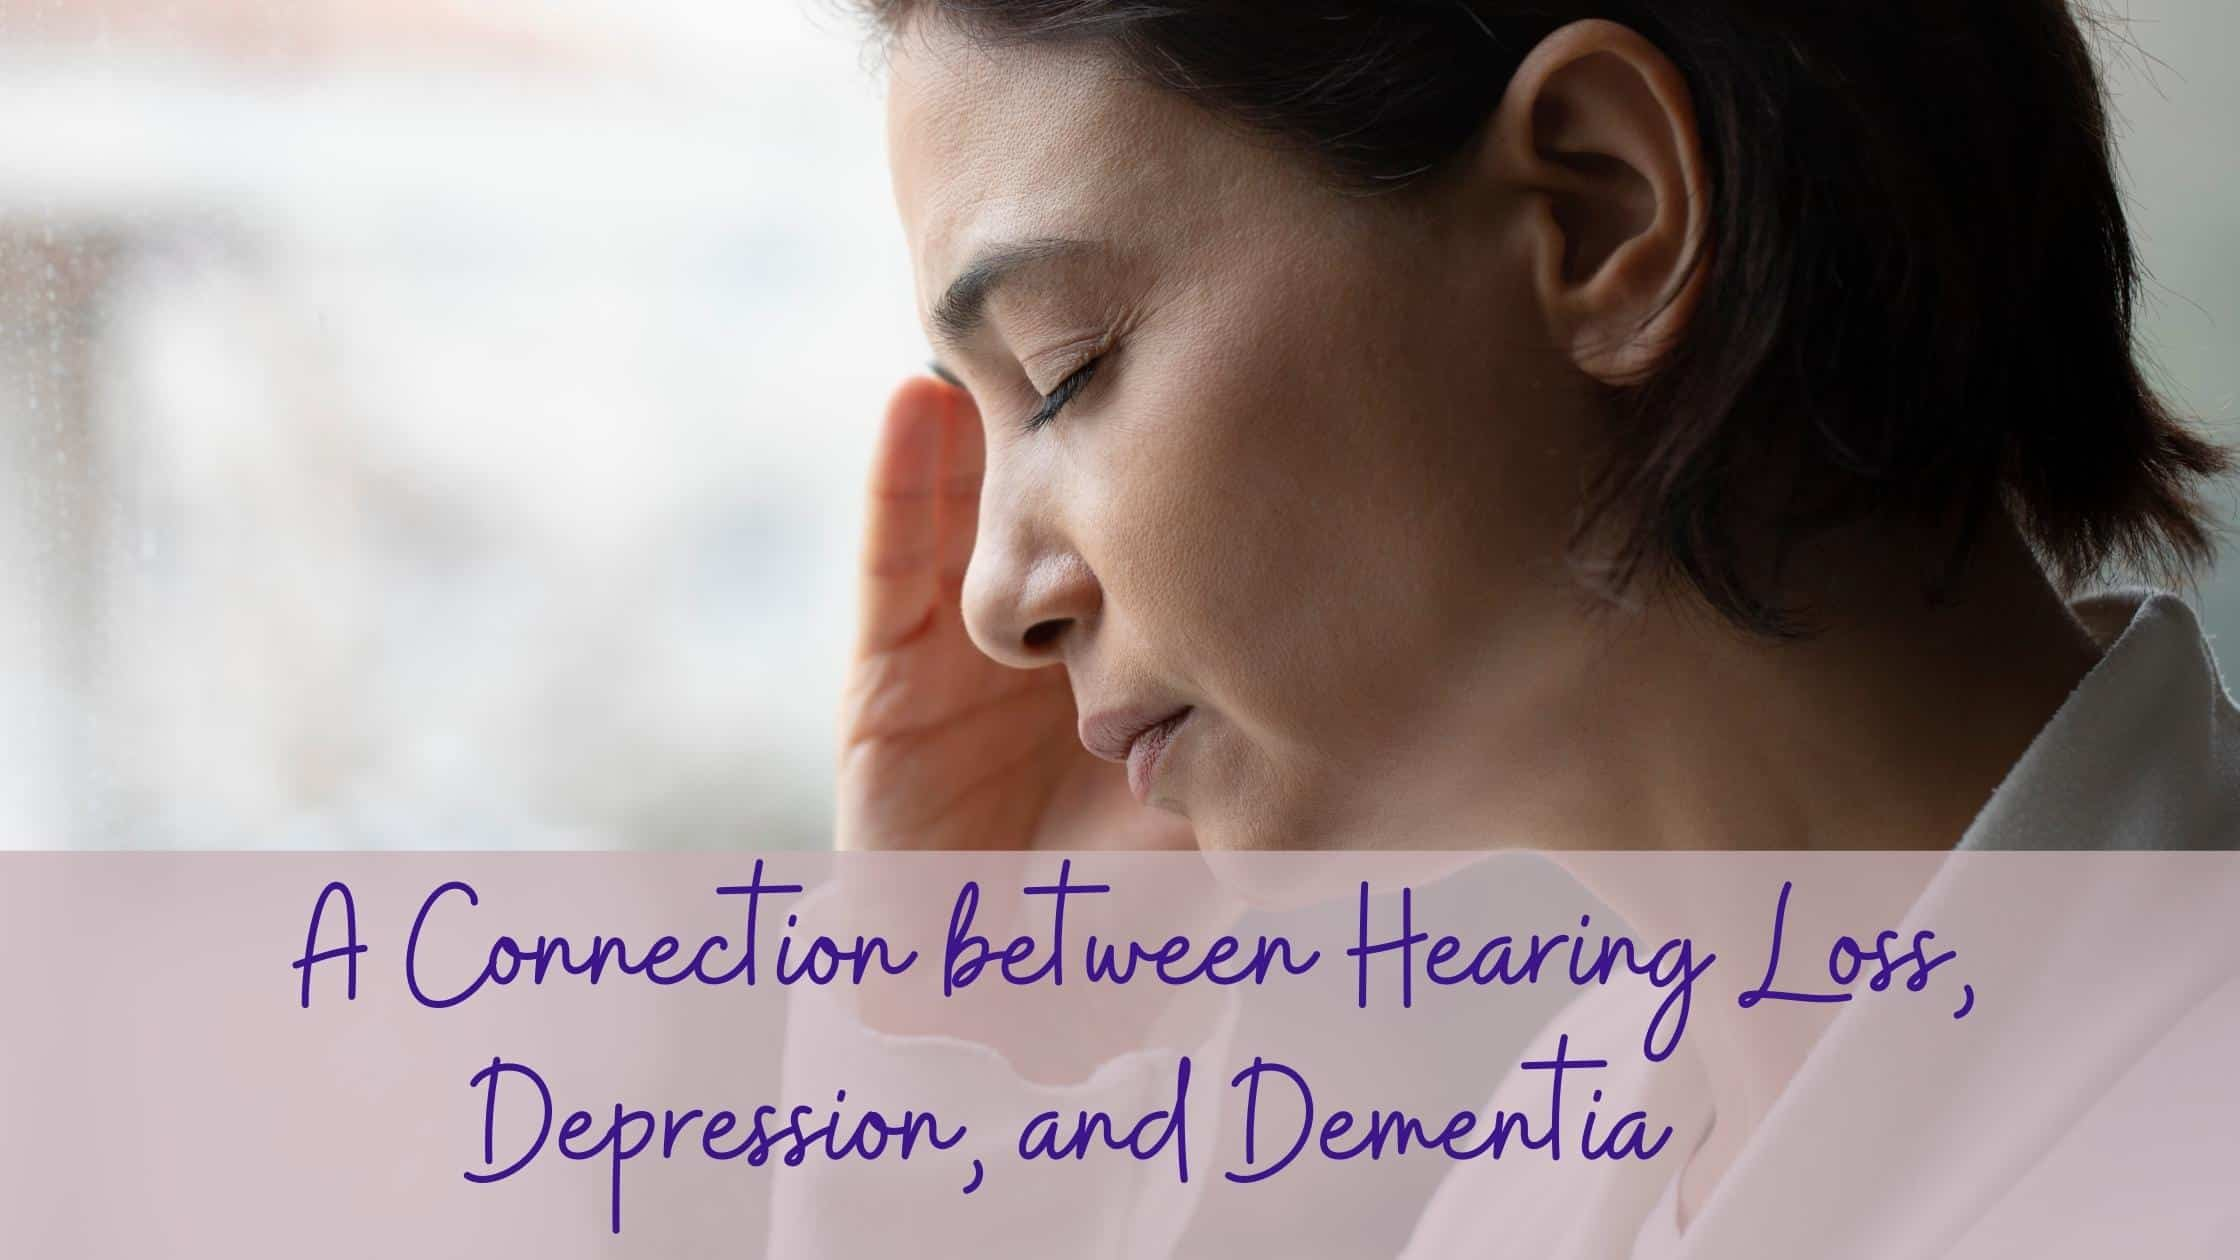 A Connection between Hearing Loss, Depression, and Dementia